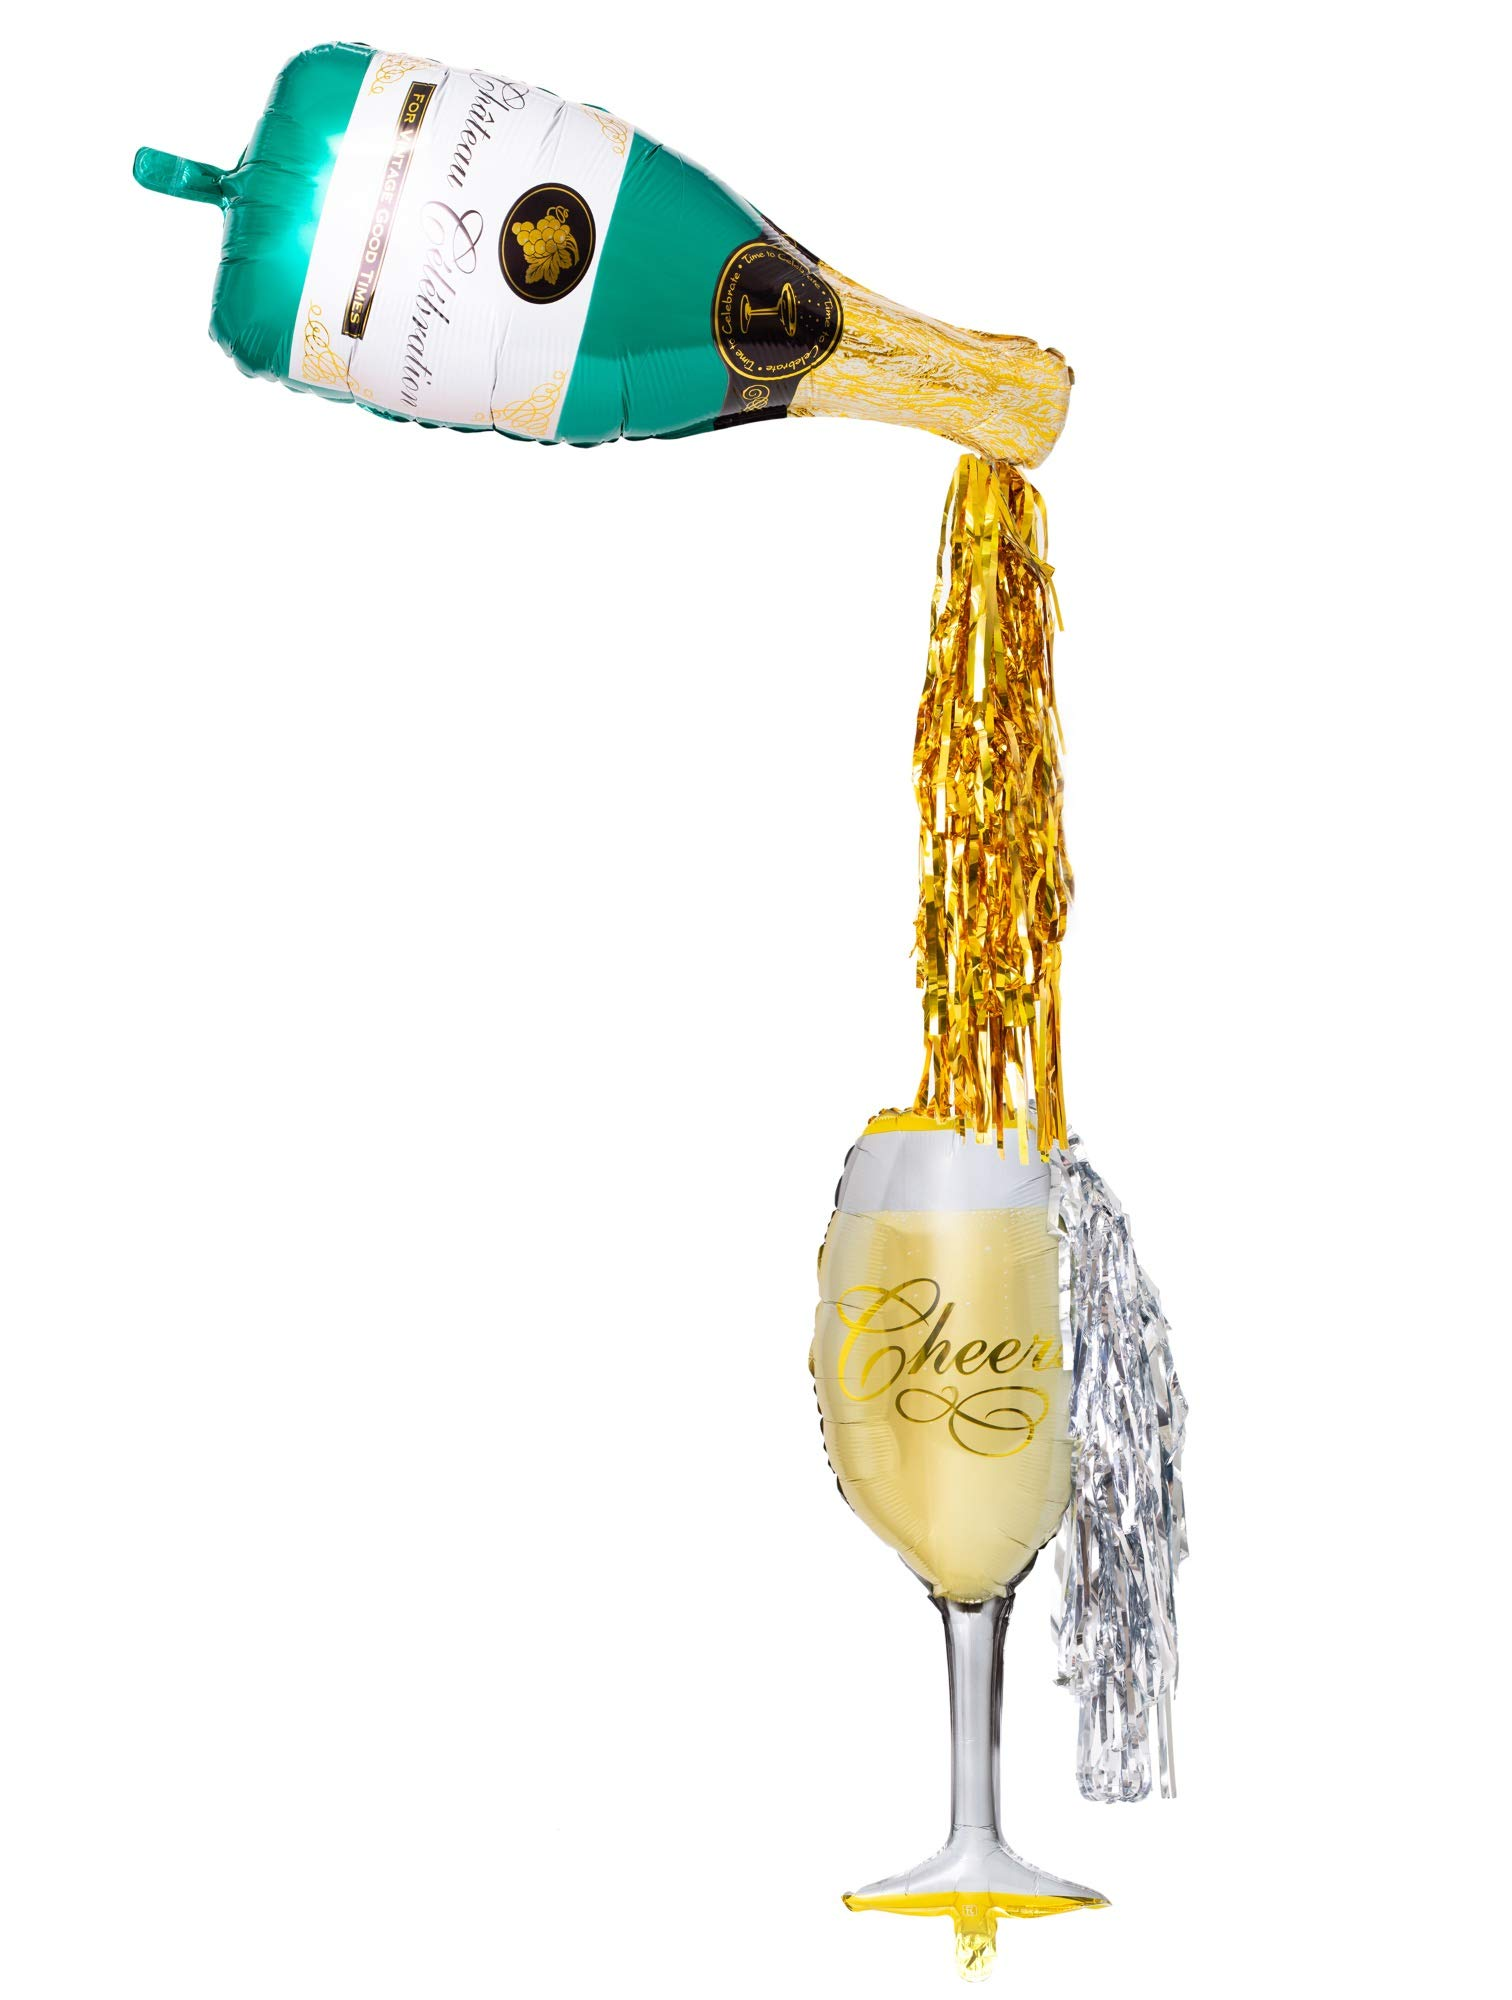 Champagne bottle balloon with flute